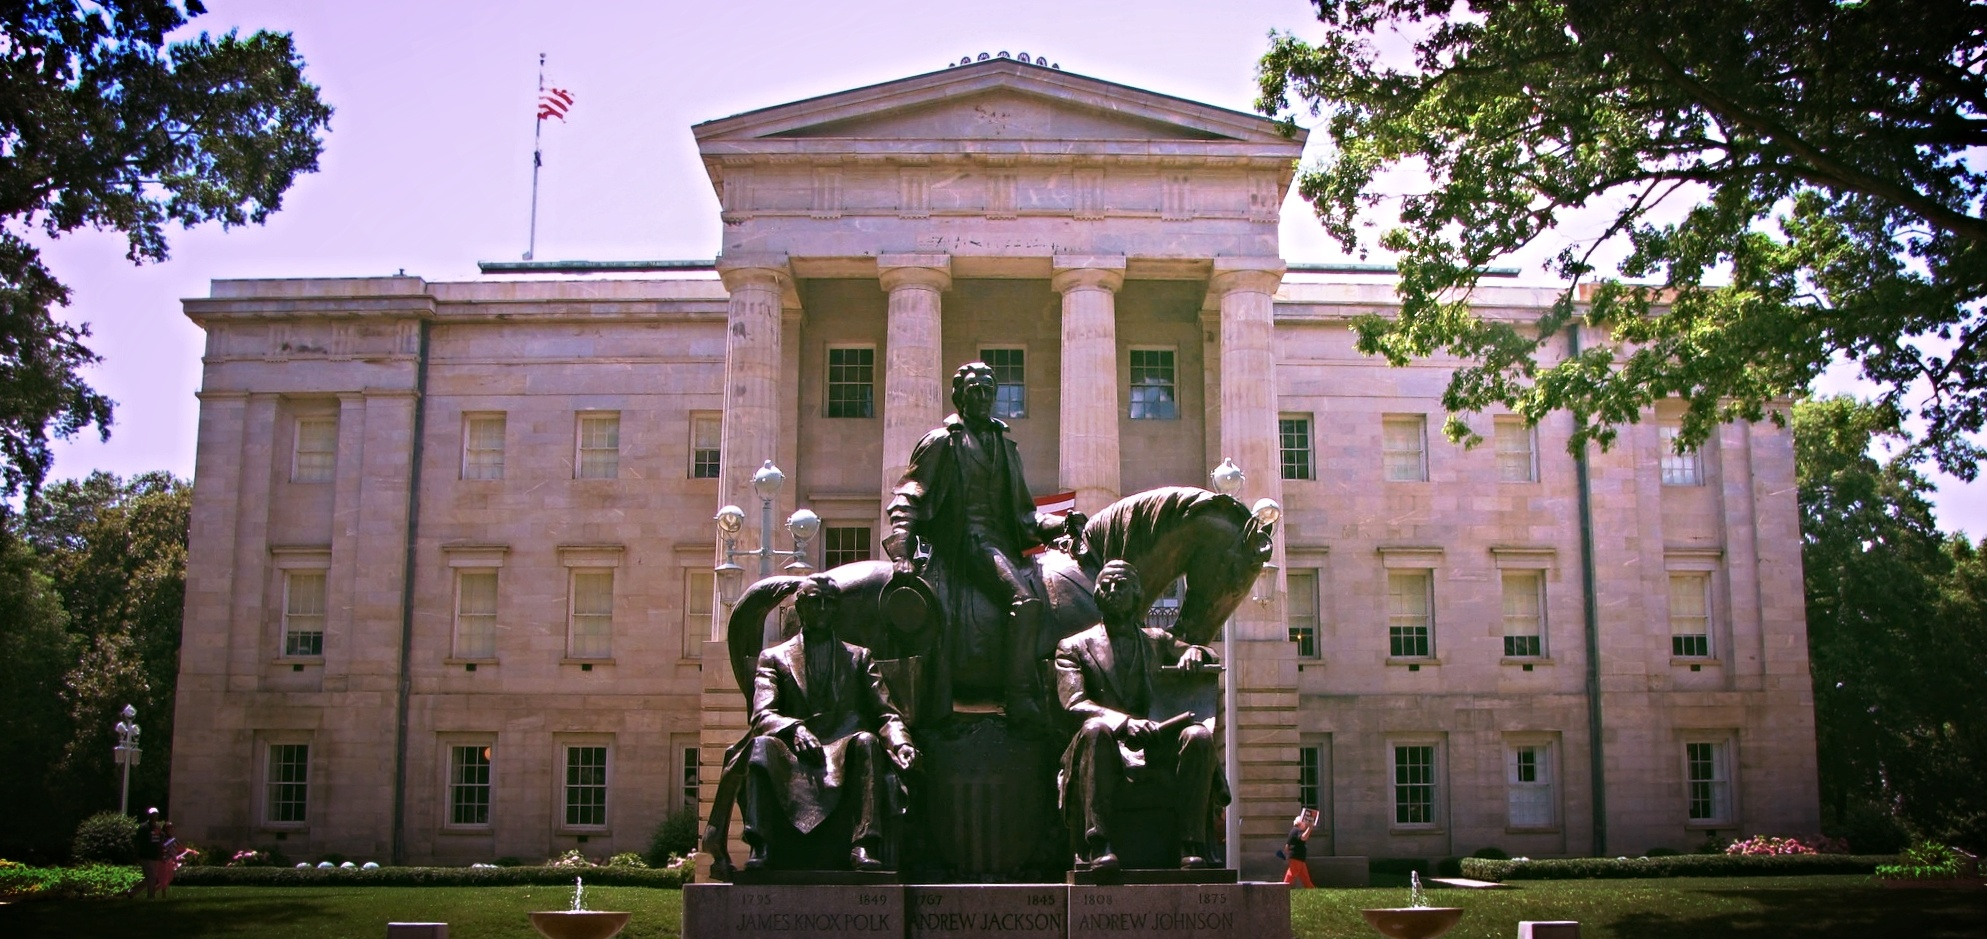 nc-capitol-Photo-by-Gerry-Dincher-955541-edited